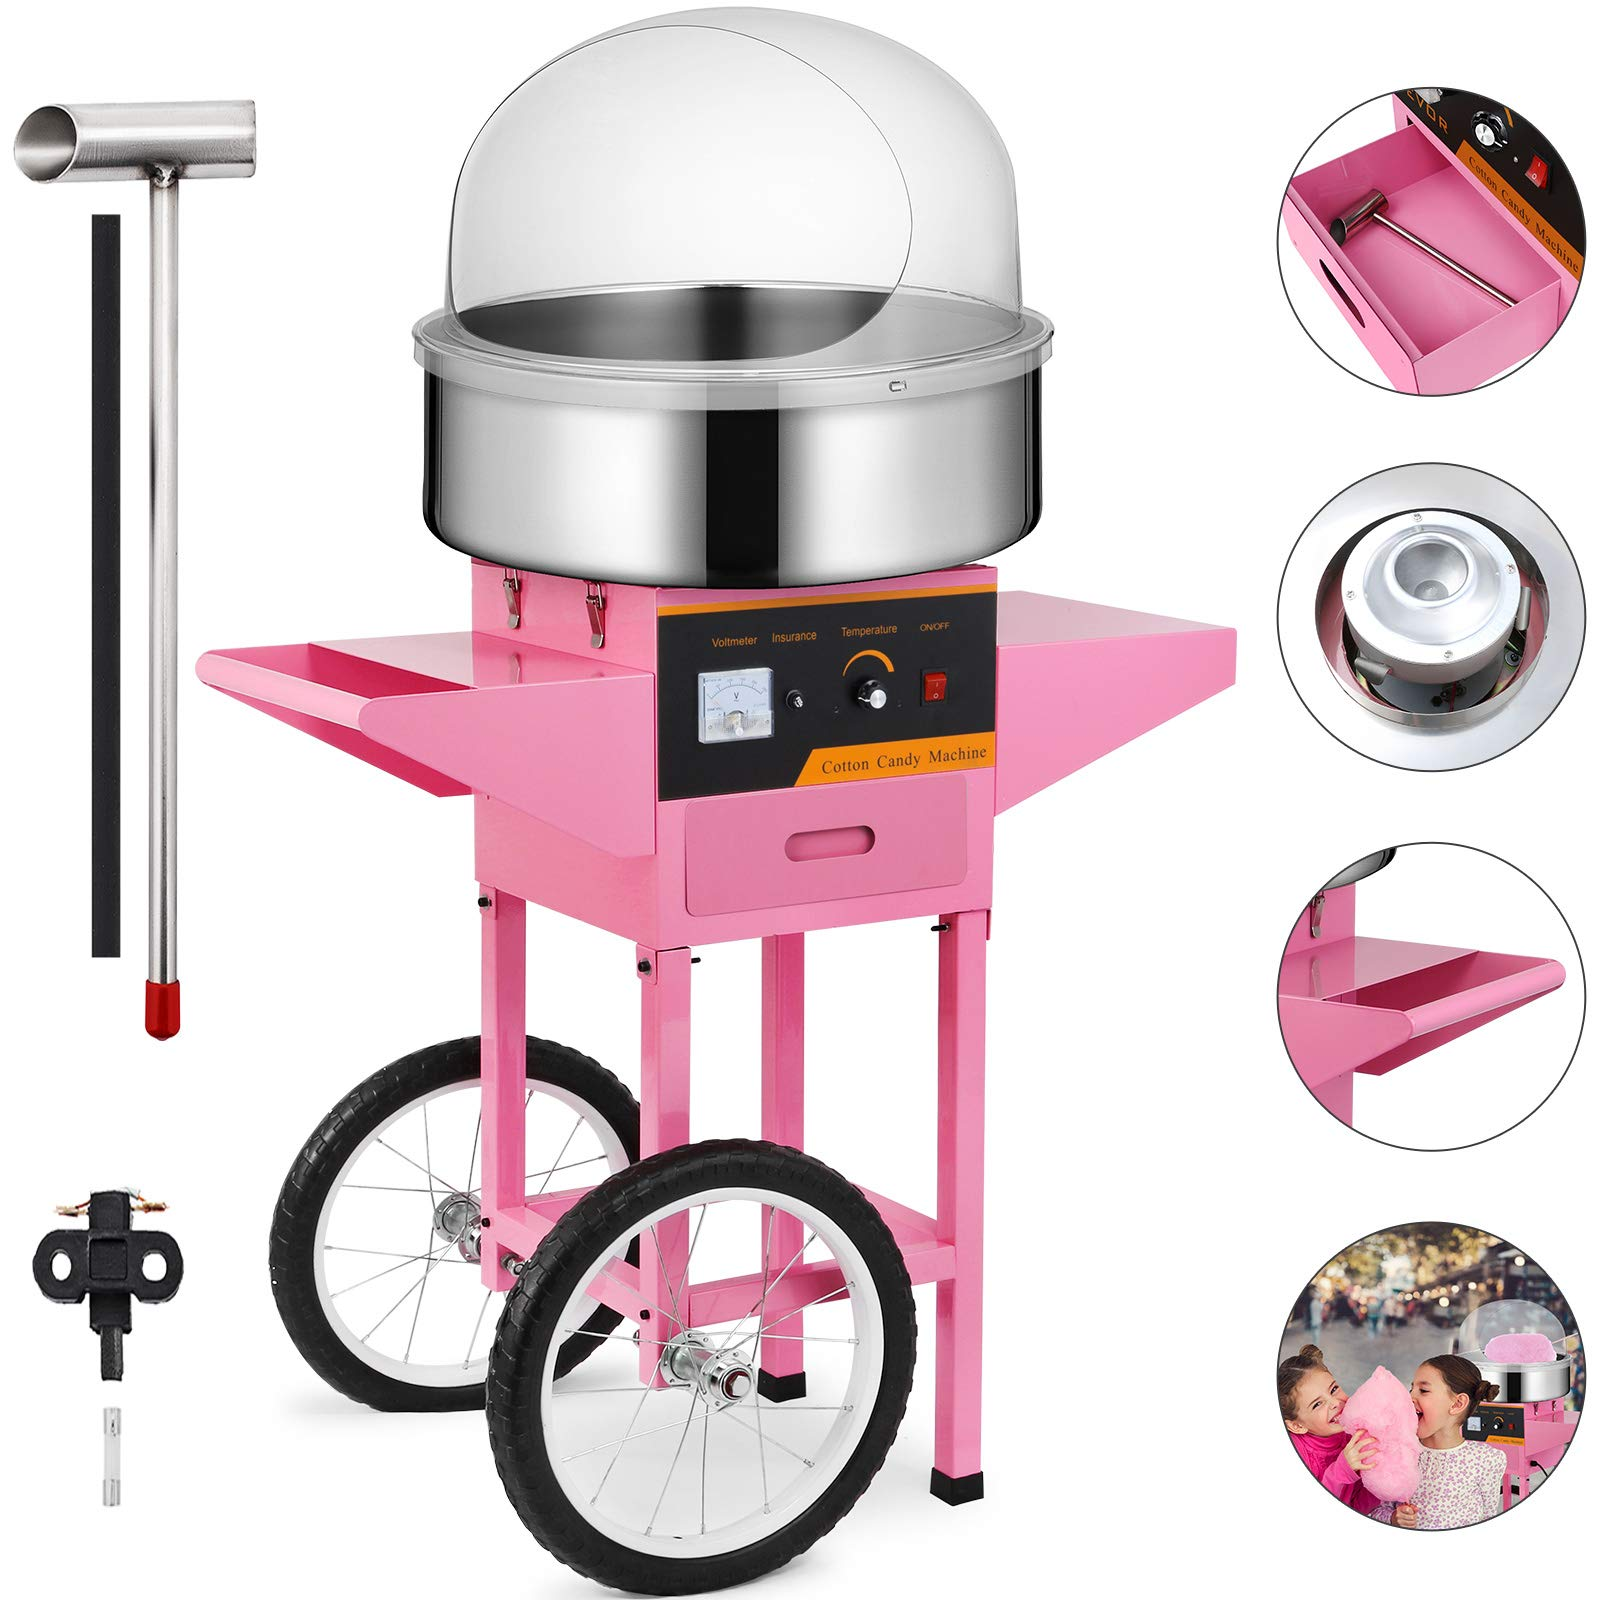 VEVOR Electric Candy Floss Maker 20.5 Inch Cotton Candy Machine 1030W for Various Parties (Cotton Candy Machine with Cart & Cover) by VEVOR